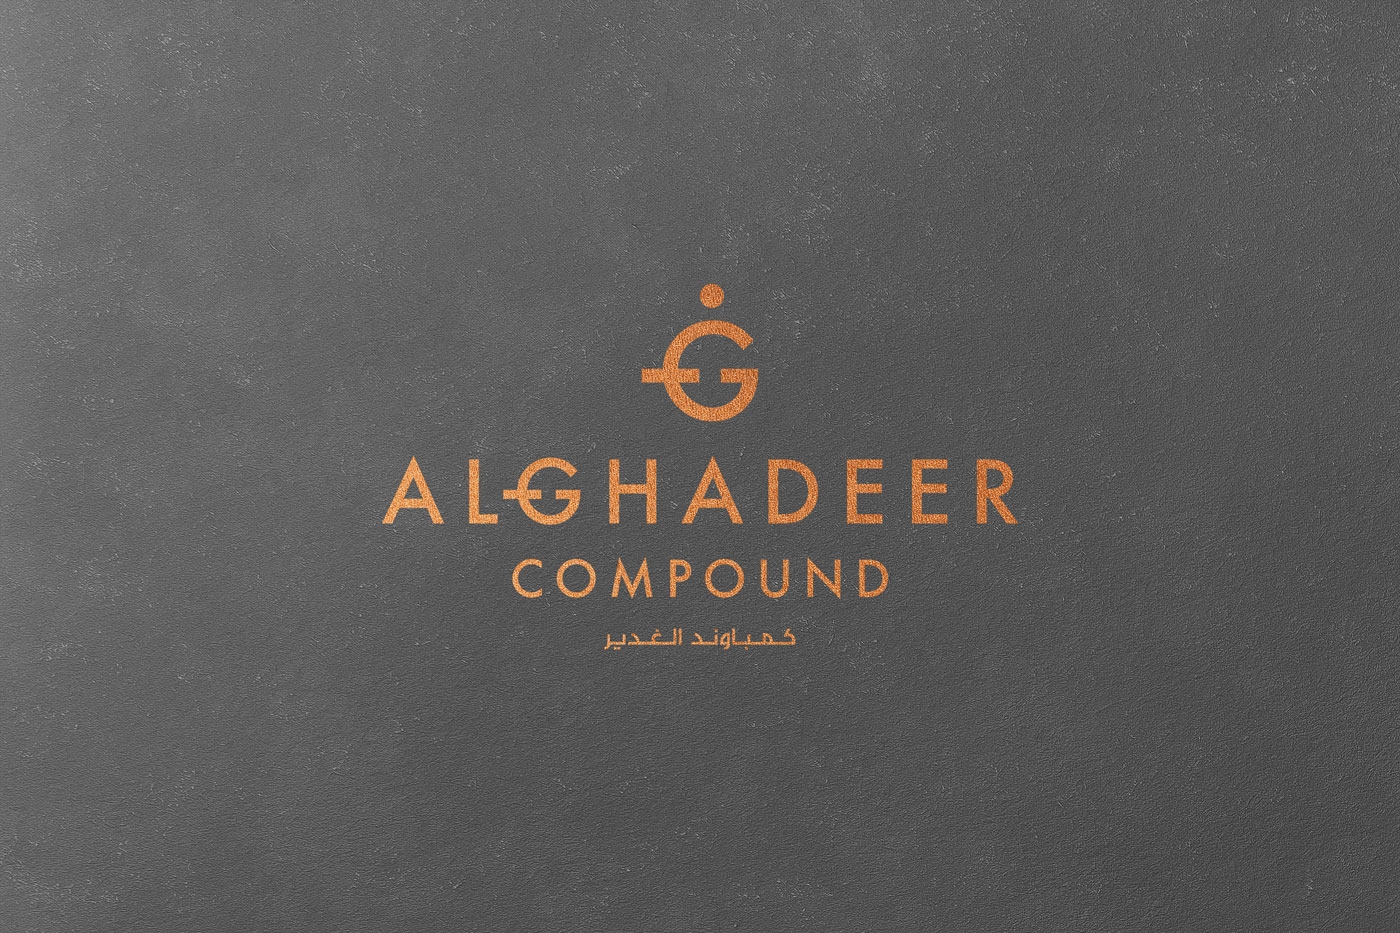 Alghadeer_Compound_Branding_k_Work_By_YaStudio